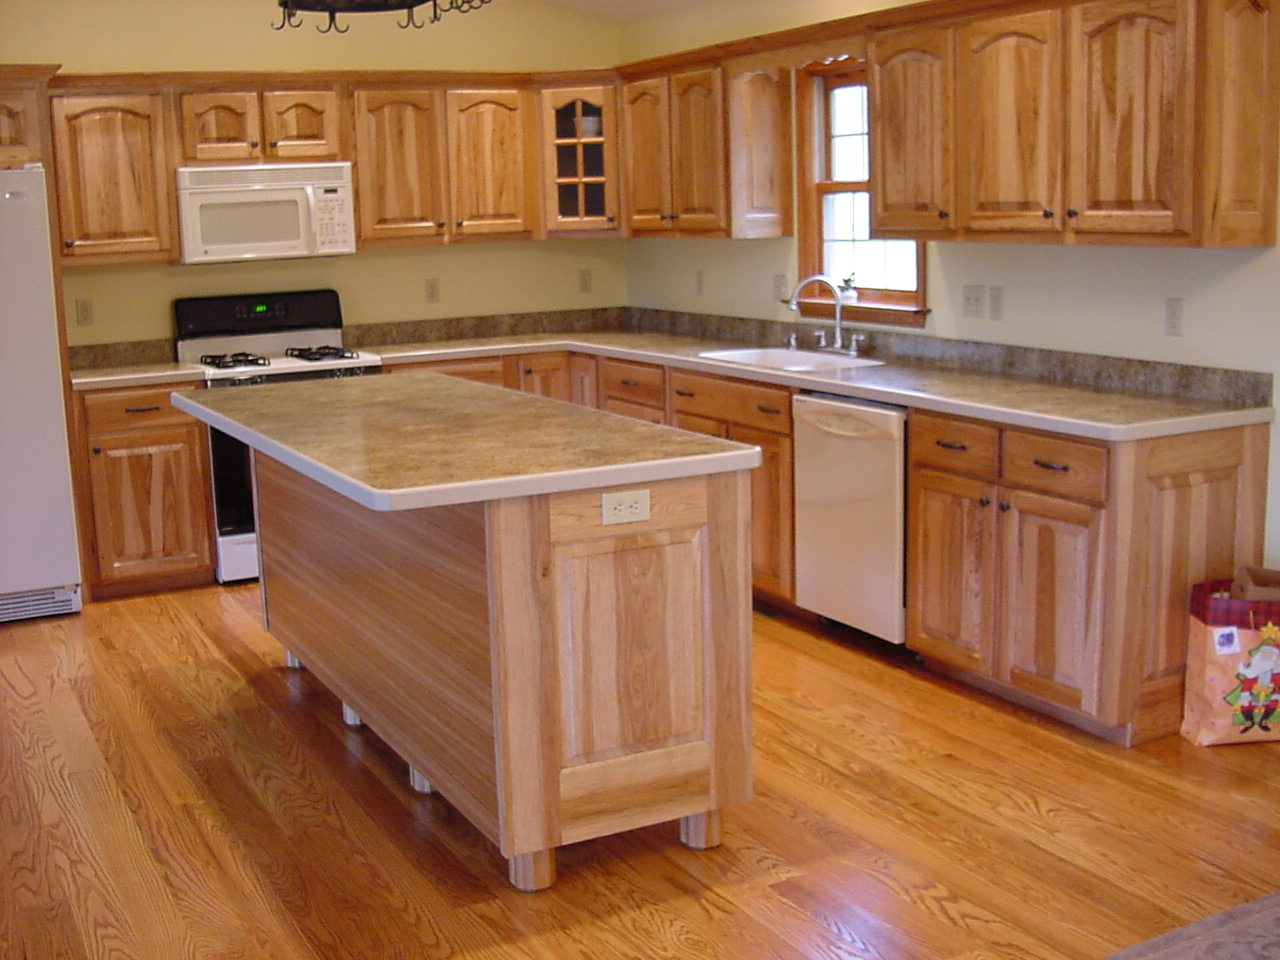 laminate kitchen ideas dr horton cabinets house construction in india kitchens countertop materials